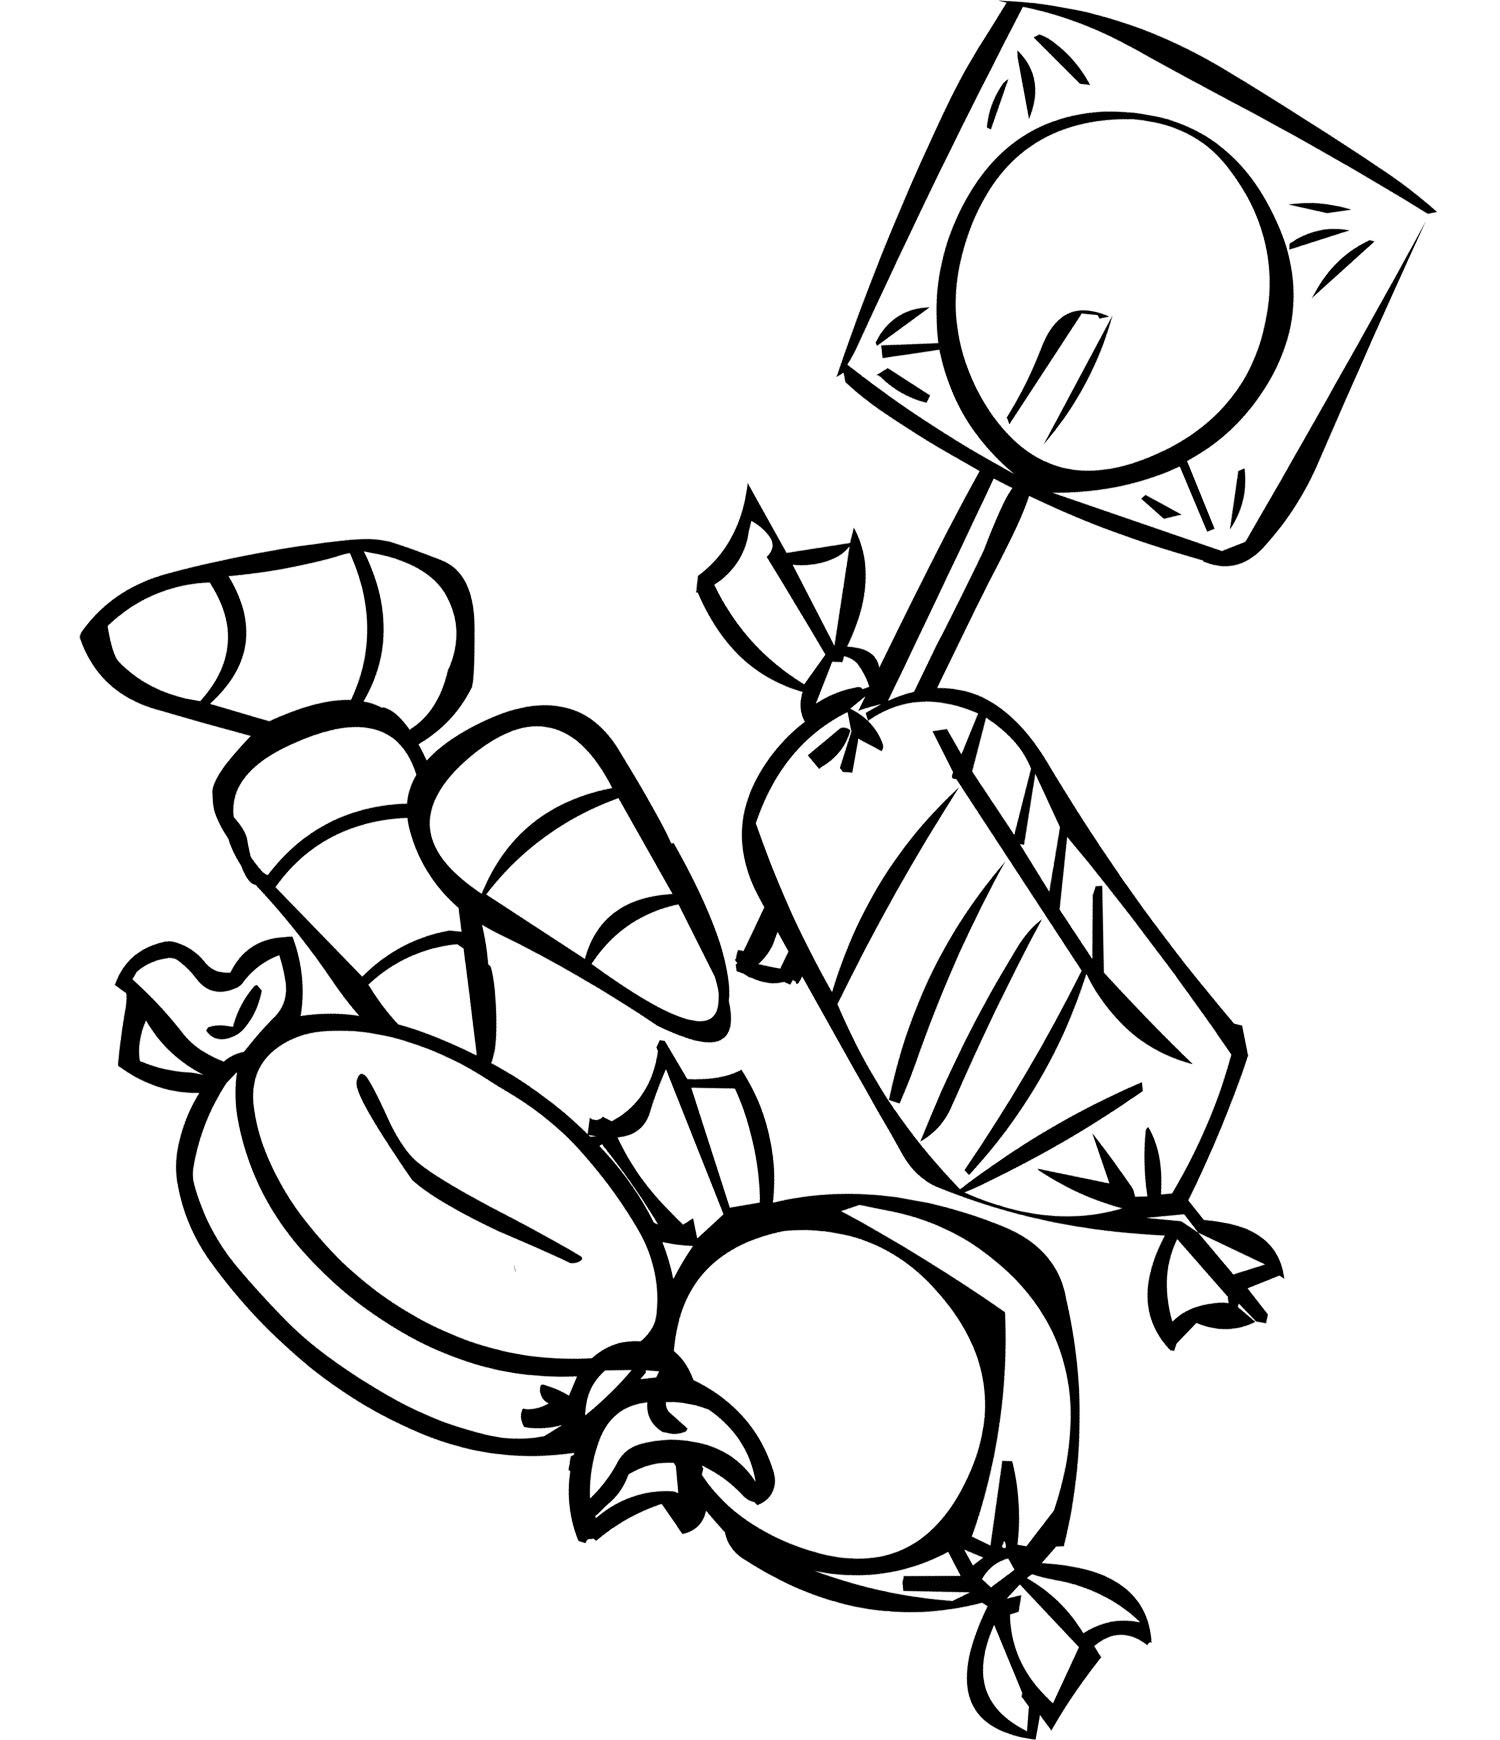 1500x1740 Sweet Treat Birthday Coloring Pages For Kids